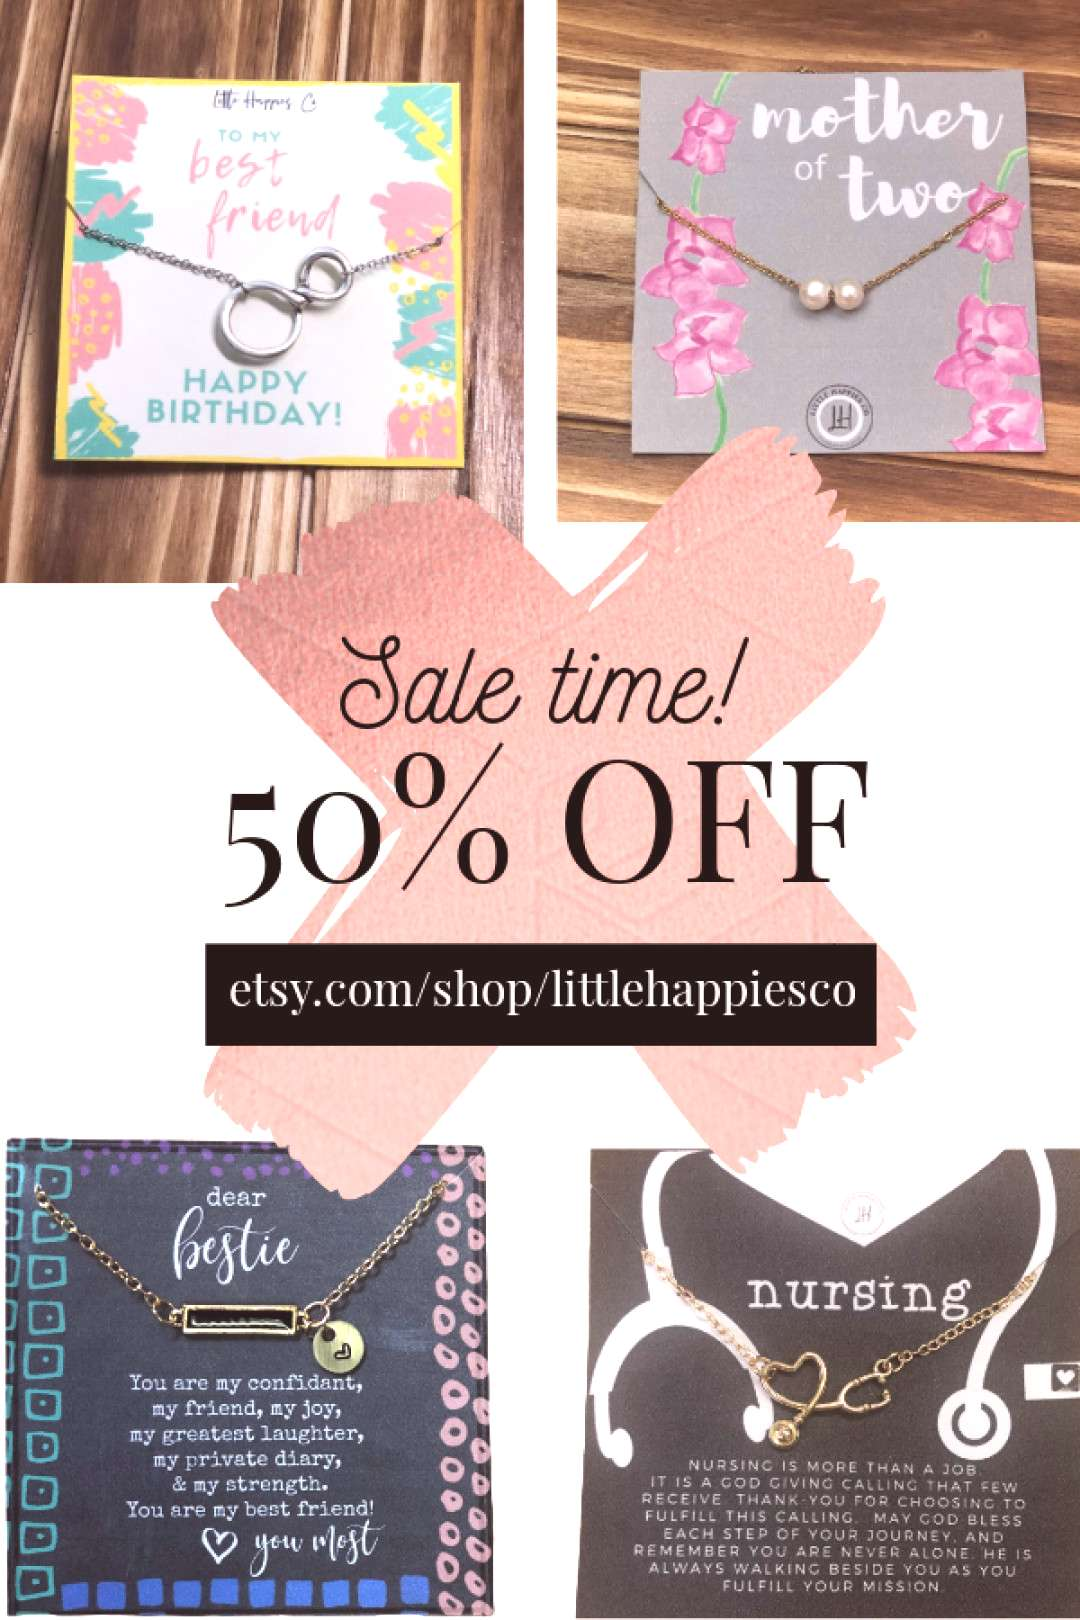 Take 50% OFF our entire shop today through Easter! Find gifts for Mothers Day, birthdays, best fri